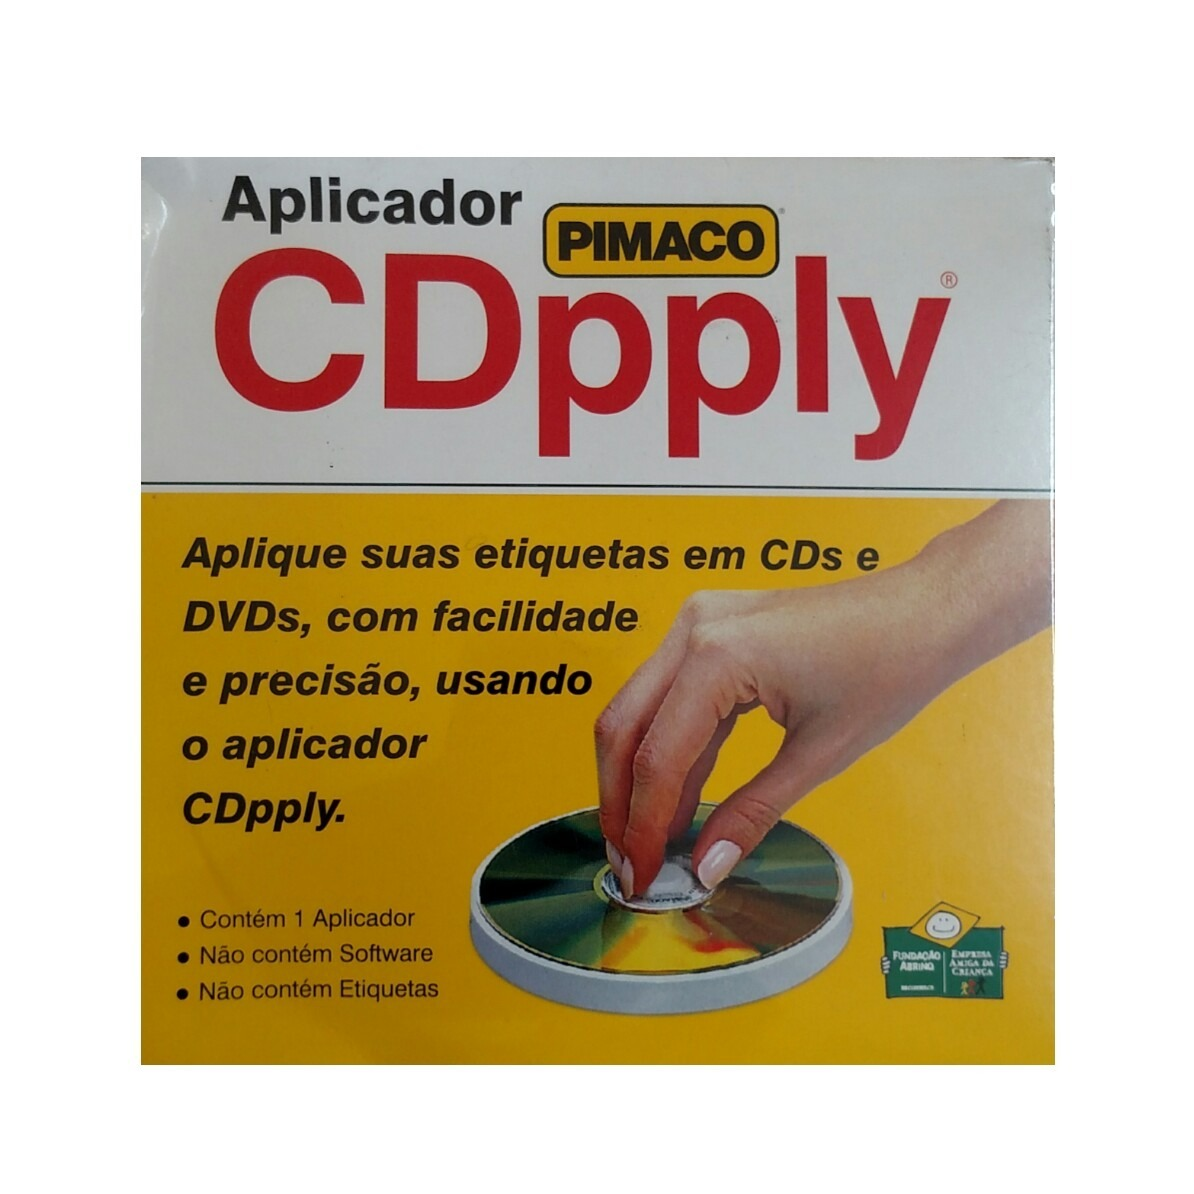 cdpply software